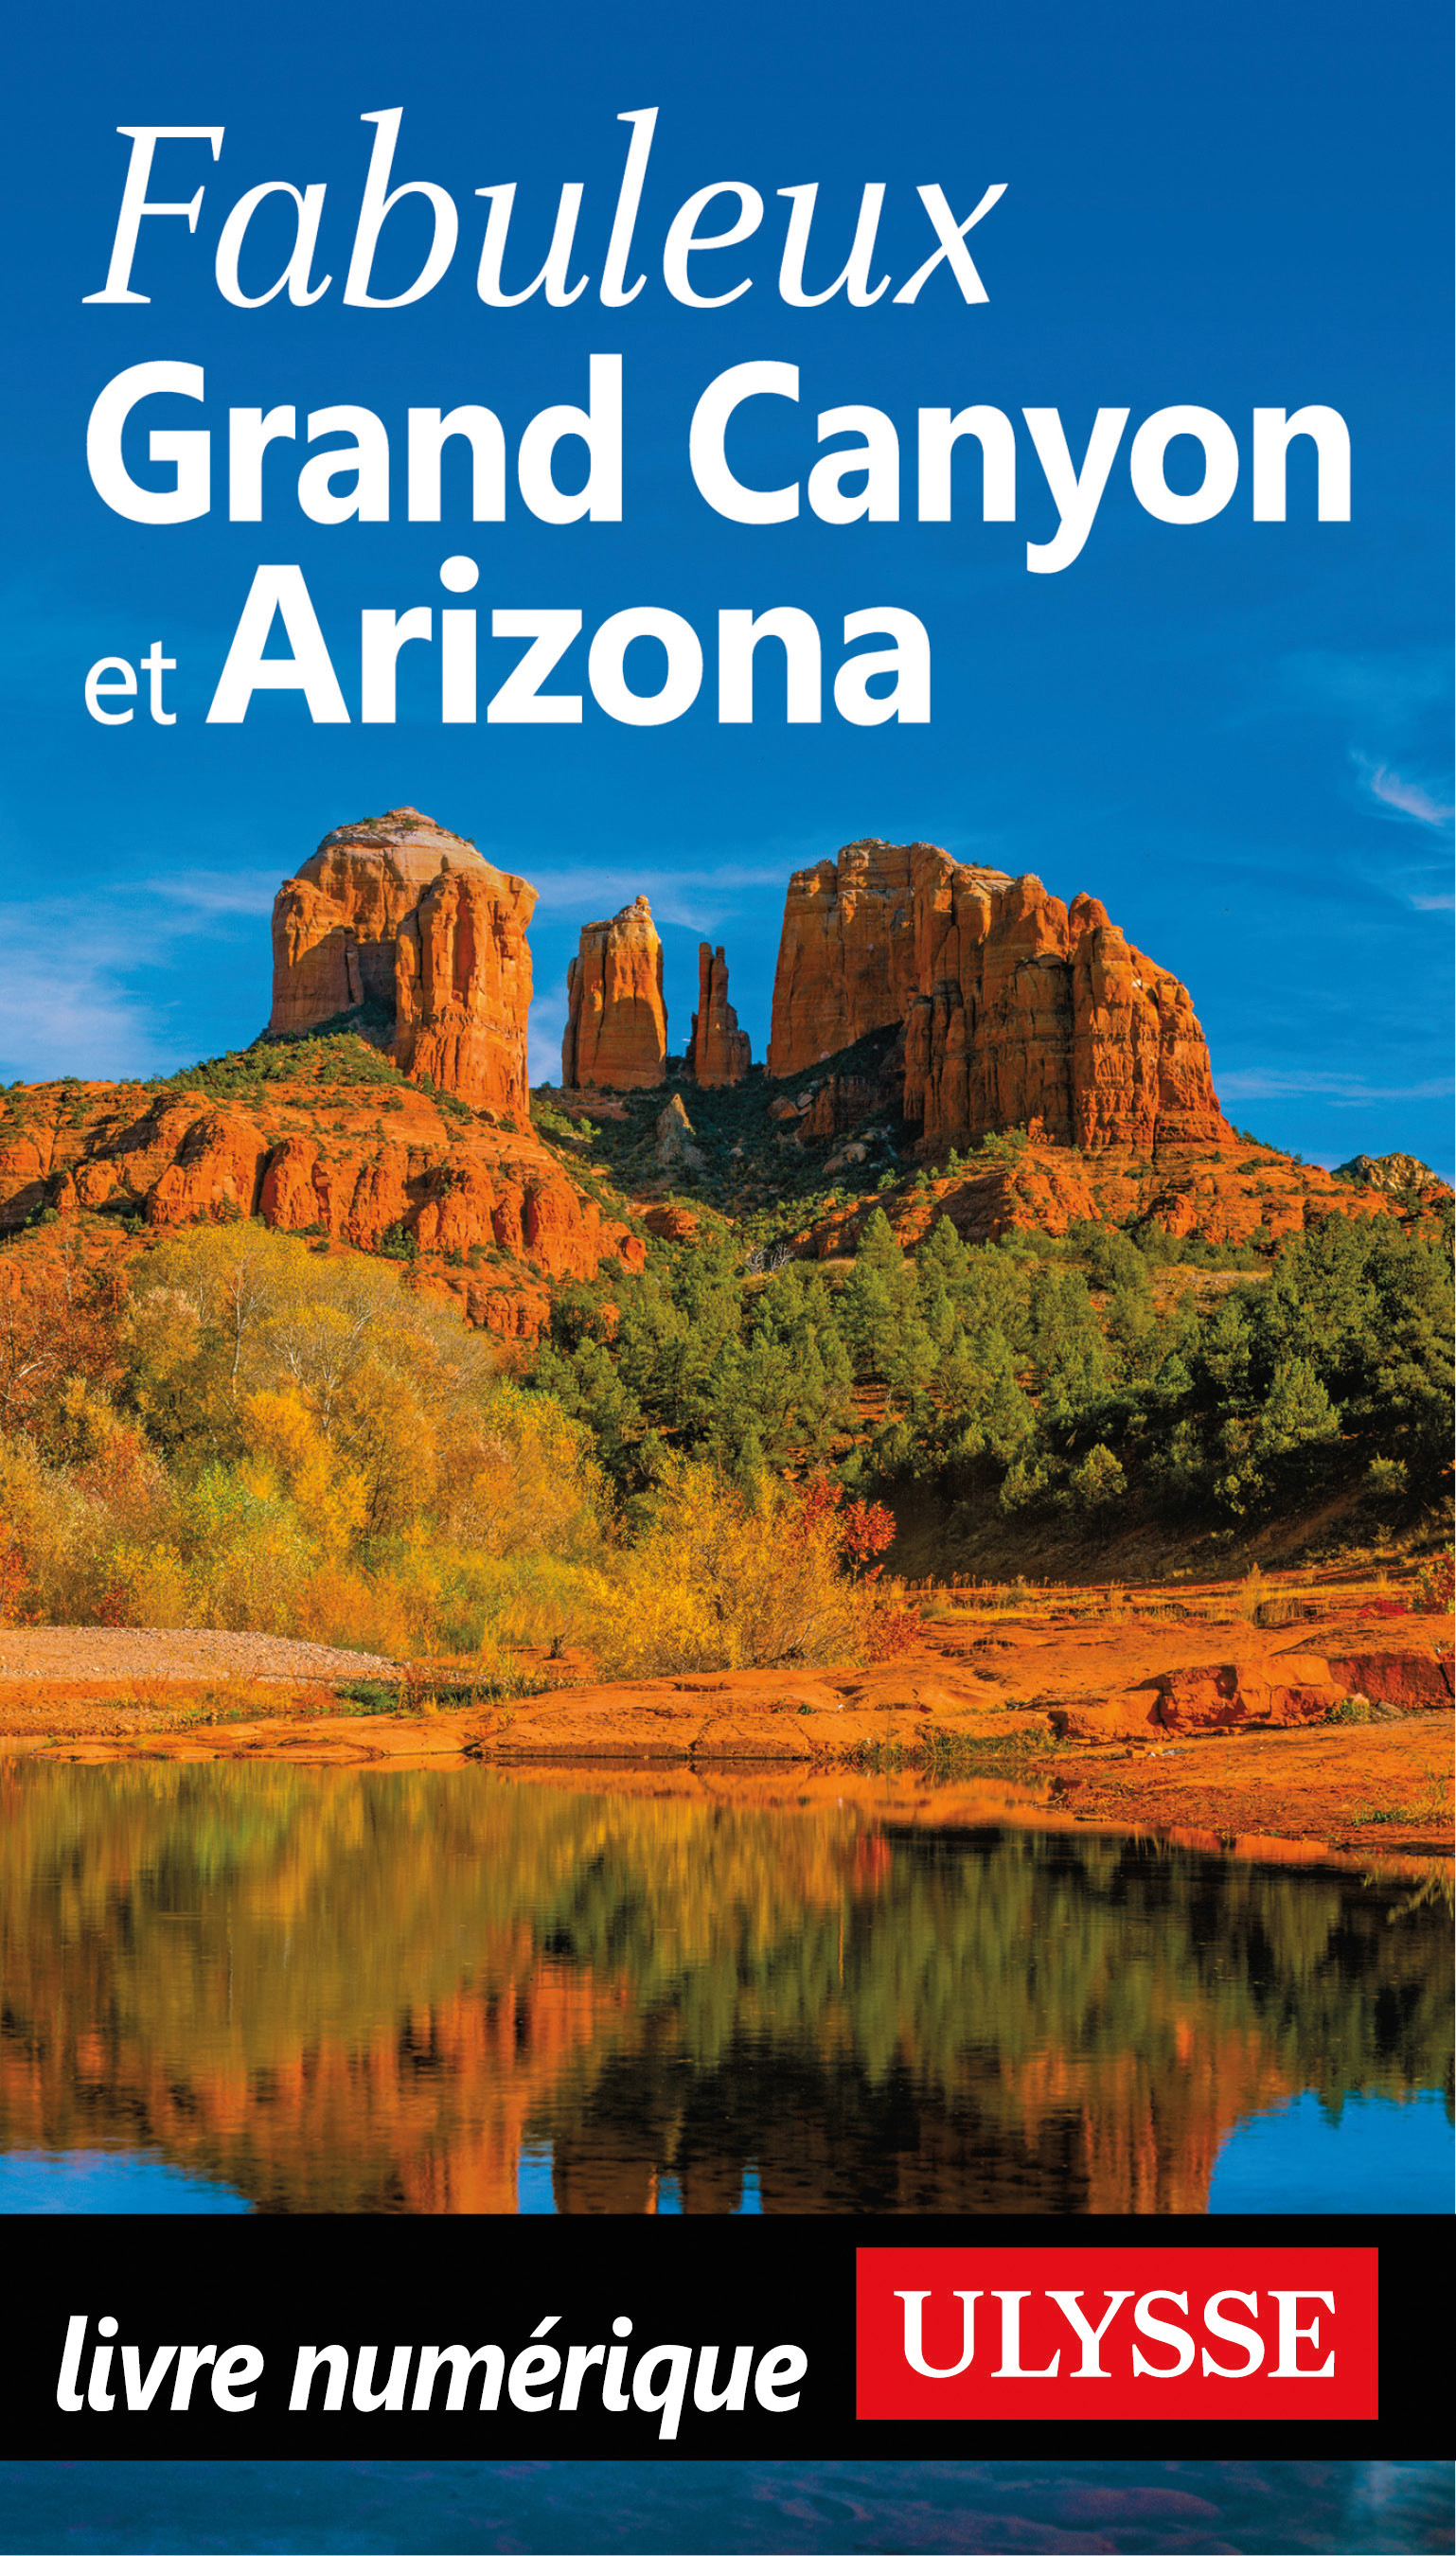 Vignette du livre Fabuleux Grand Canyon et Arizona